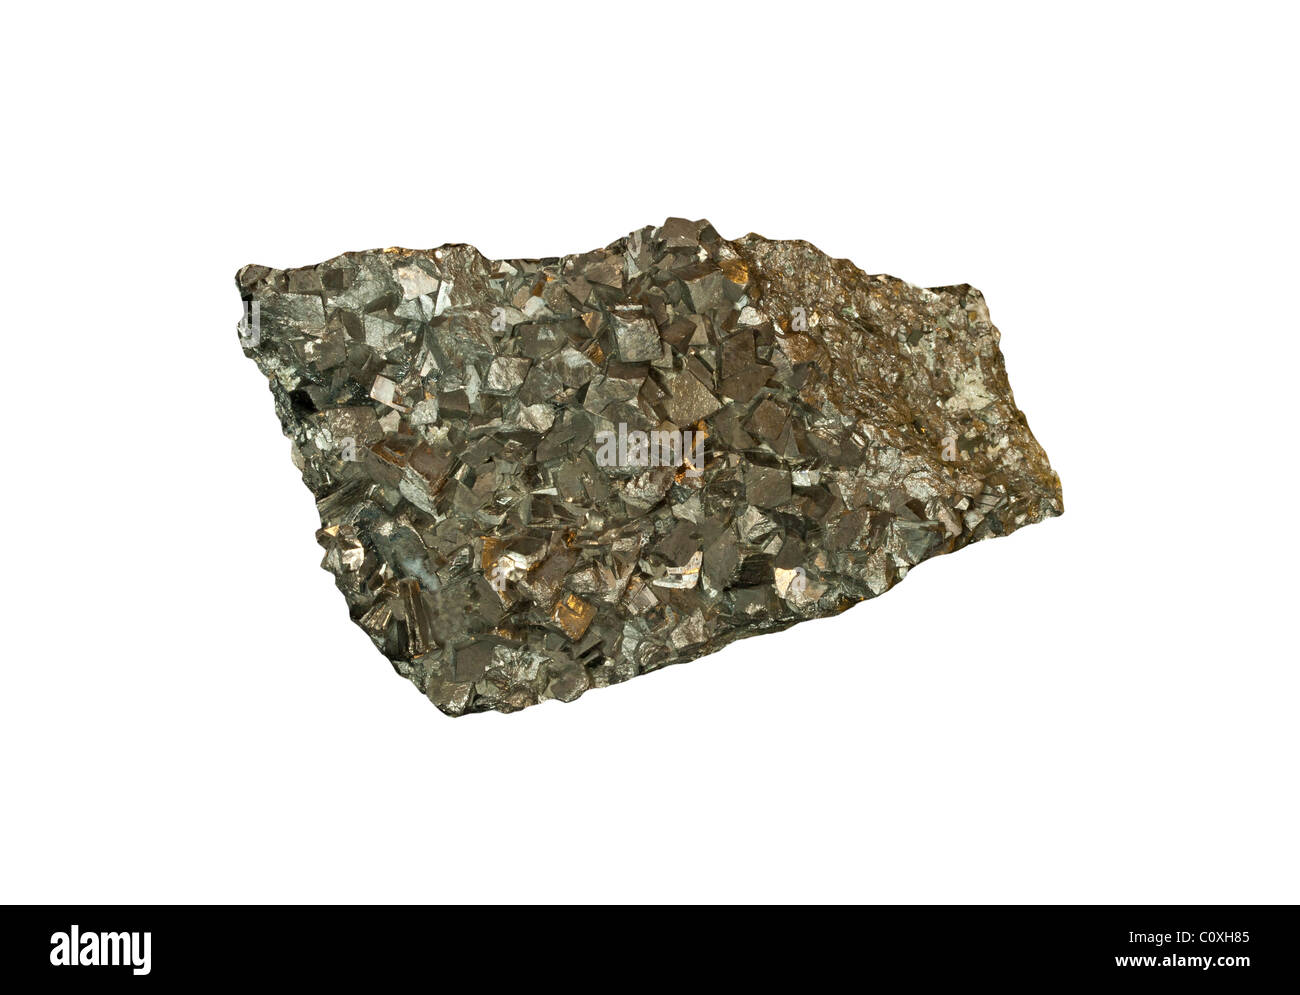 Arsenopyrite crystals from Zacatescas Mexico - Stock Image